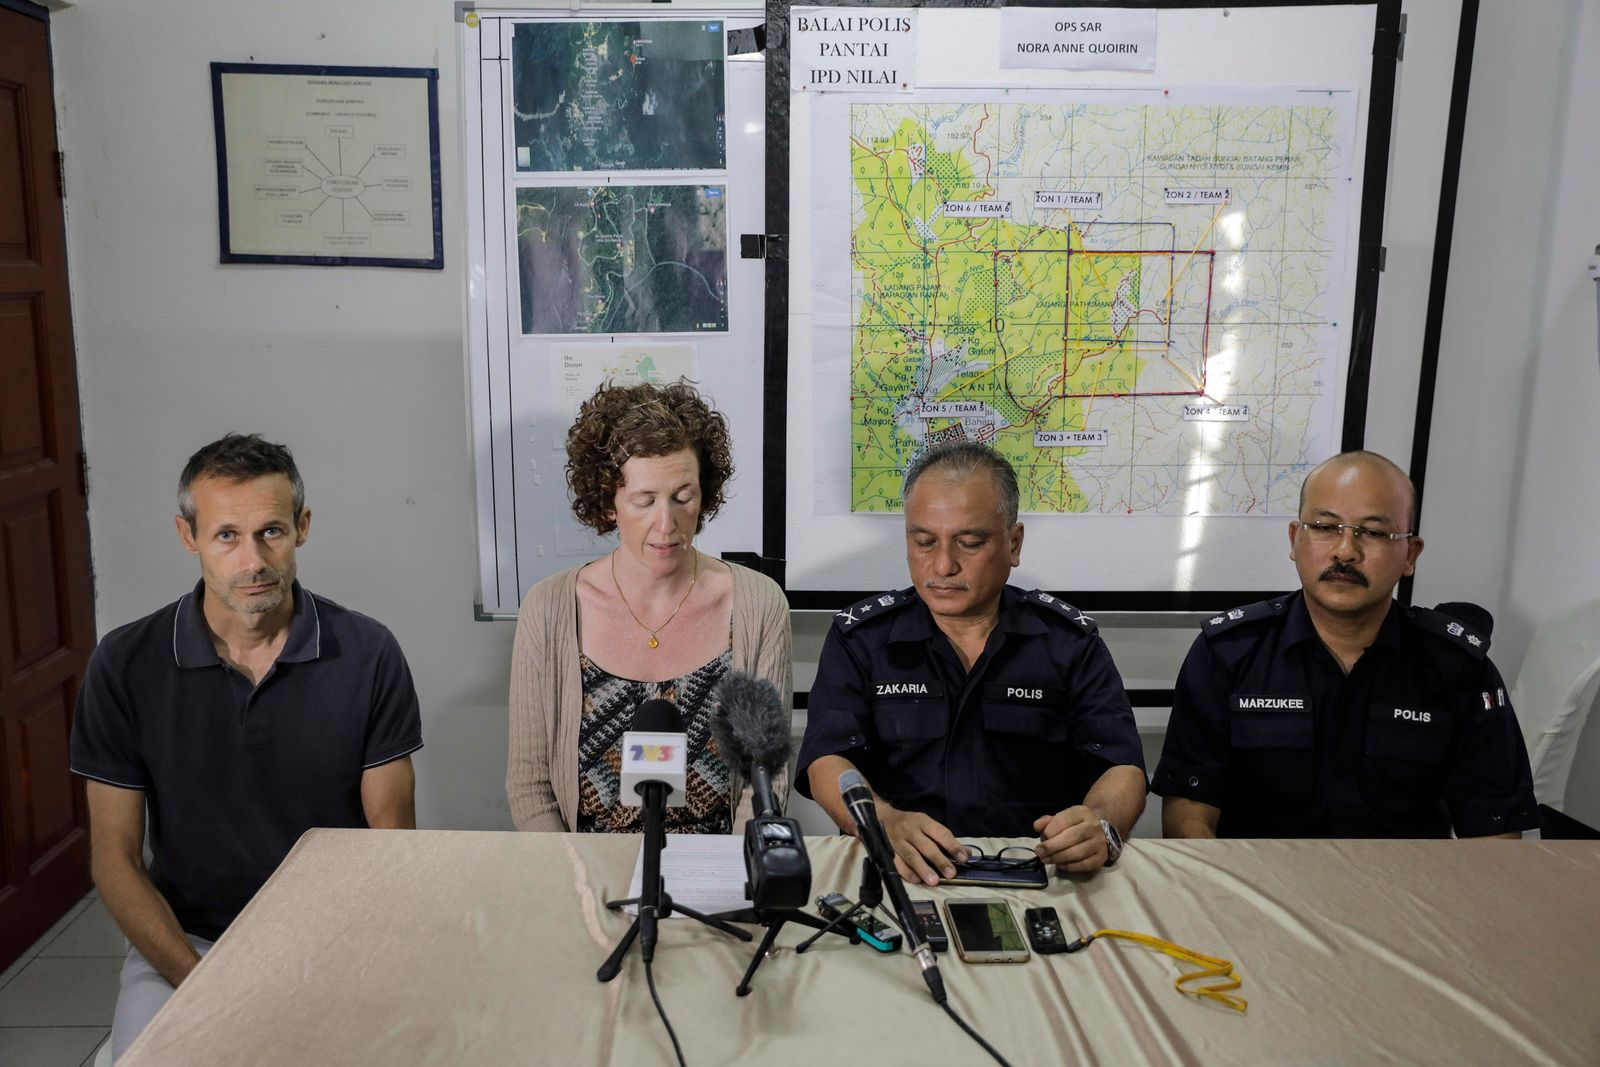 Meabh Quoirin, mother of missing schoolgirl Nora Anne Quoirin, reads a statement at a news conference in Seremban, Malaysia Monday, Aug. 12, 2019.(AP Photo)